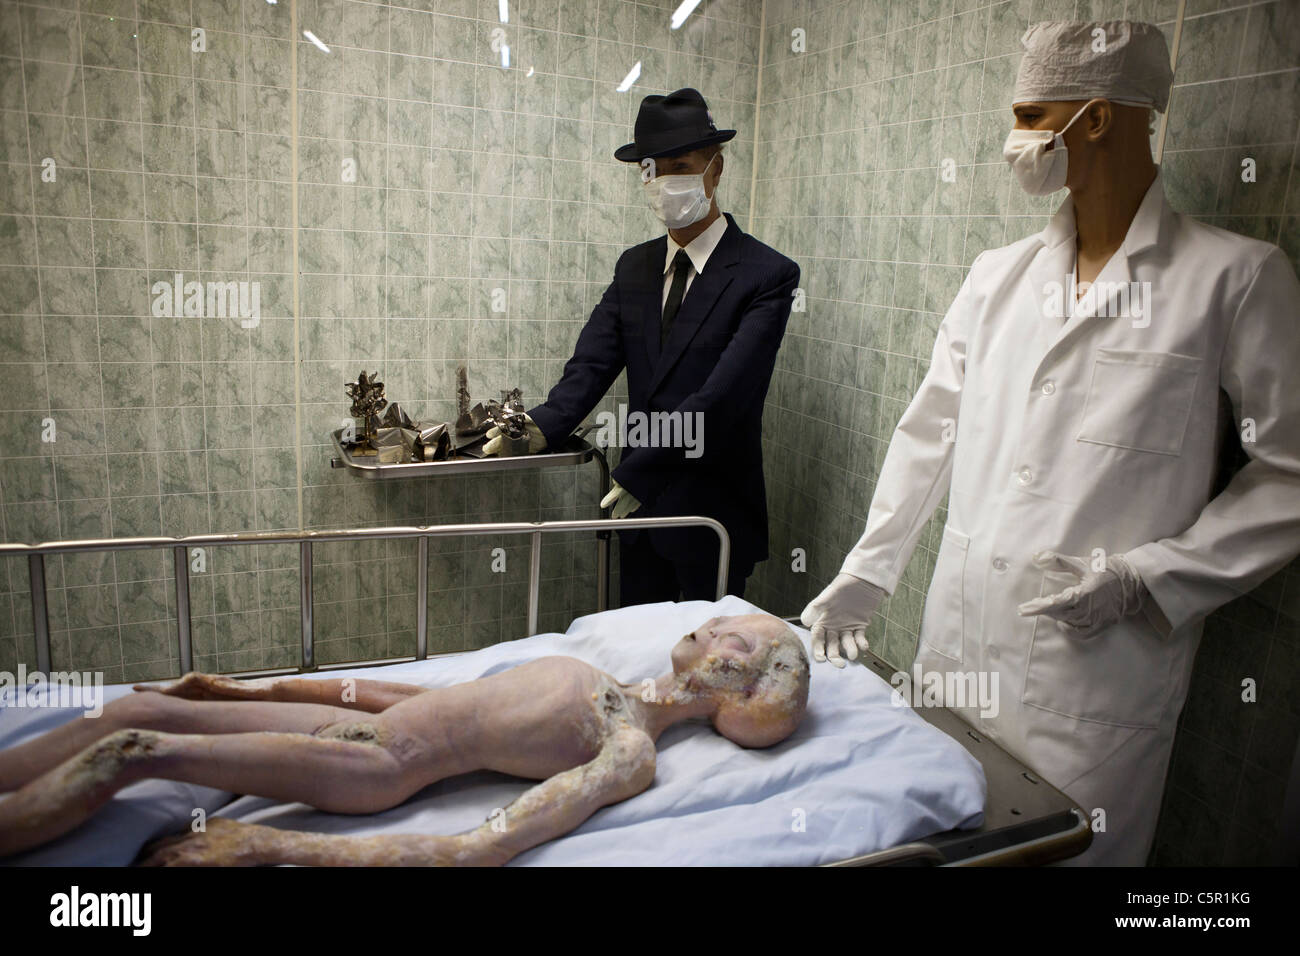 Alien autopsy exhibit, International UFO Museum and Research Center, Roswell, New Mexico, United States of America - Stock Image